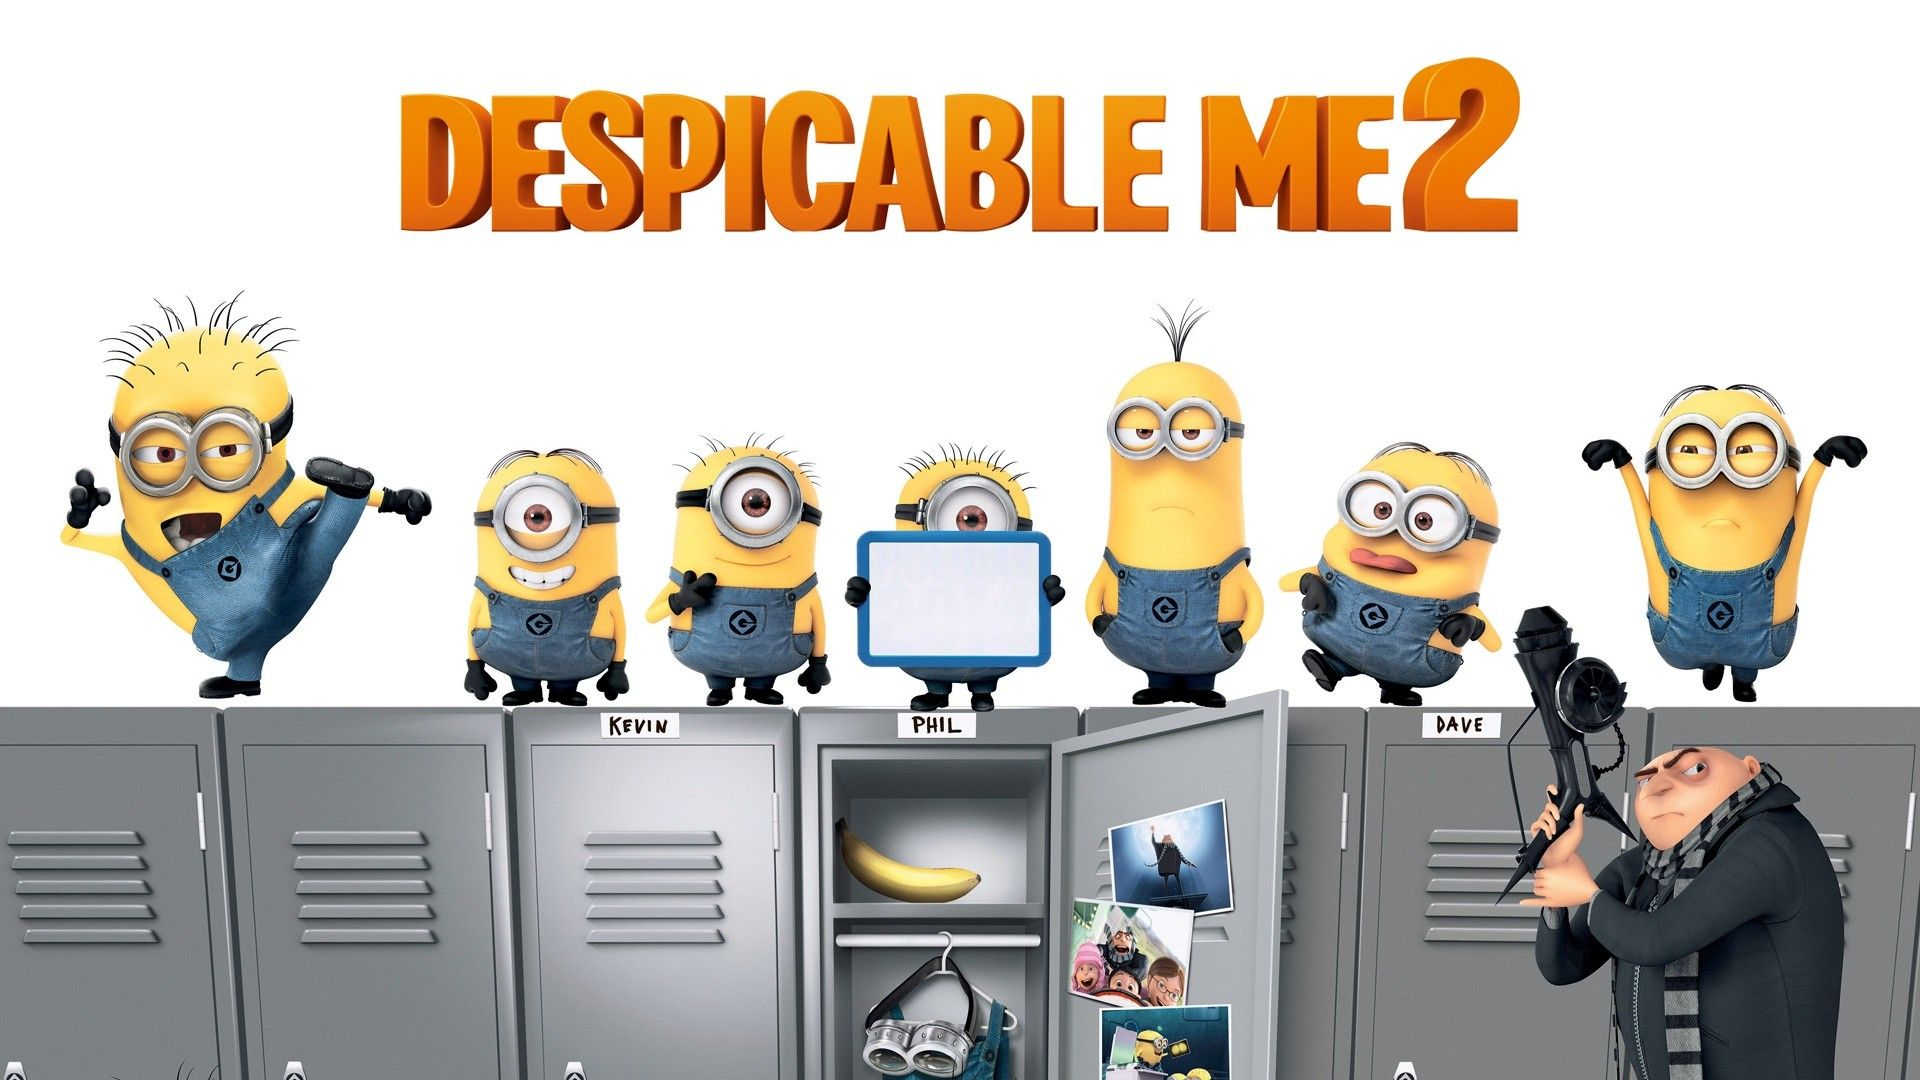 Despicable-Me-Minions-For-Android-more-info-wallpaper-wpc9004212